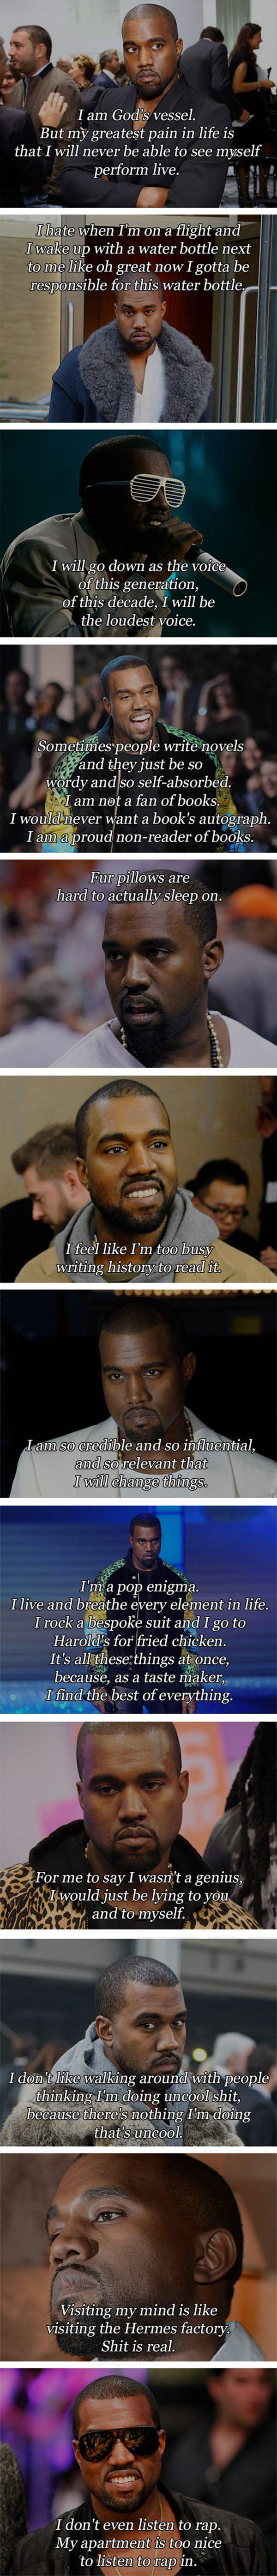 kanye quotes funny picture